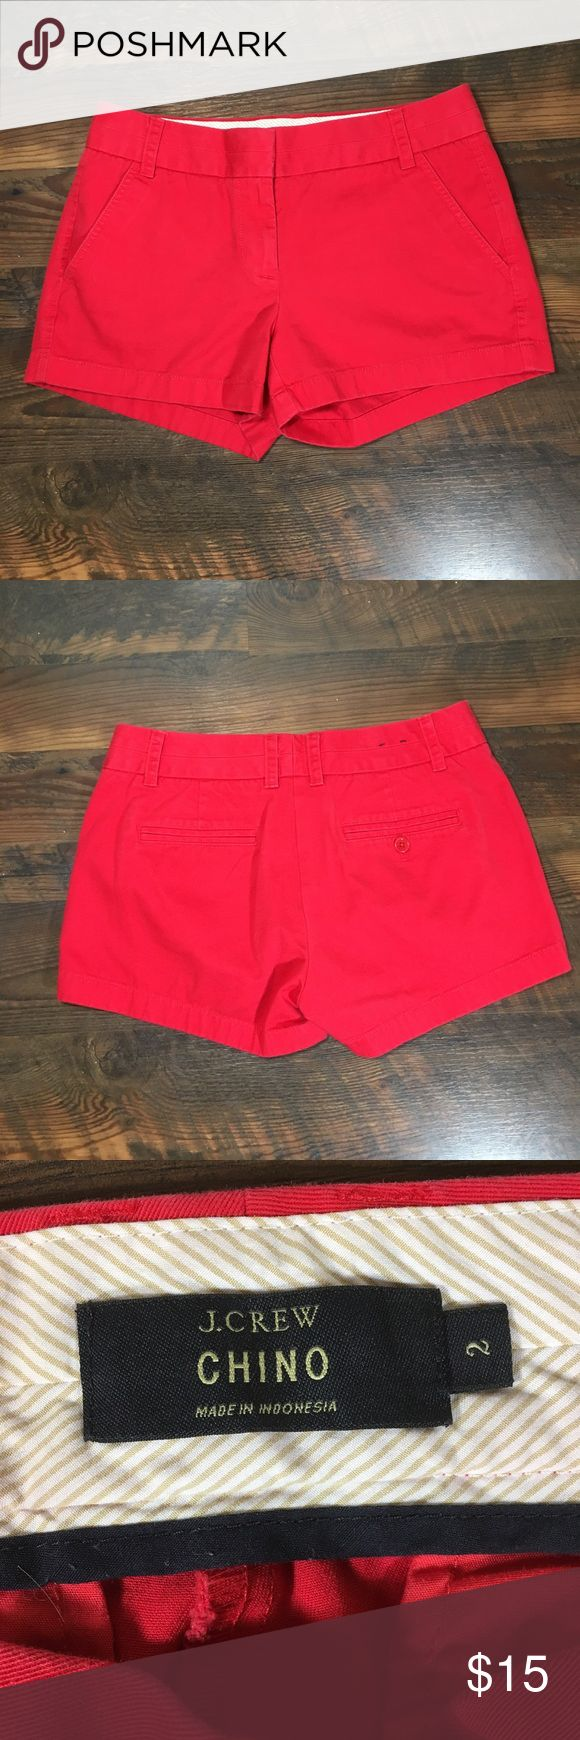 "J. Crew Chino red 3"" shorts 61456 size 2 Waist 15"", rise 8.5"", inseam 3"". It's always warm and sunny somewhere, so everyone's favorite classic chino short is back in a slew of bright colors.  Cotton. Zip fly. Machine wash. Import. Item 61456. J. Crew Shorts"